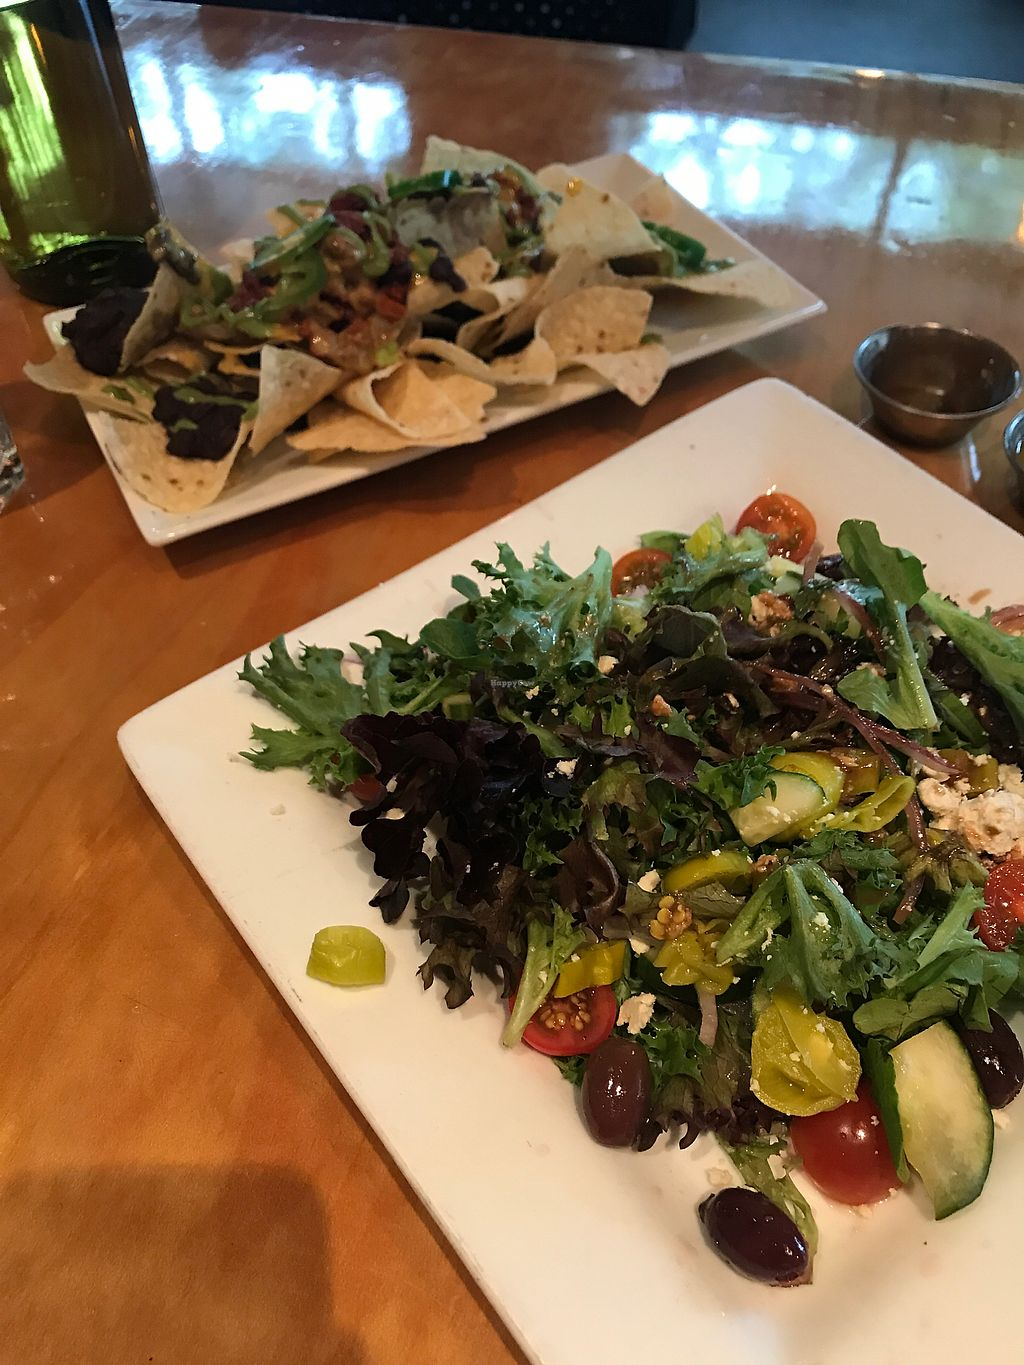 """Photo of Watercourse Foods  by <a href=""""/members/profile/ChynaCat"""">ChynaCat</a> <br/>Nachos and Greek Salad <br/> September 15, 2017  - <a href='/contact/abuse/image/1754/304576'>Report</a>"""